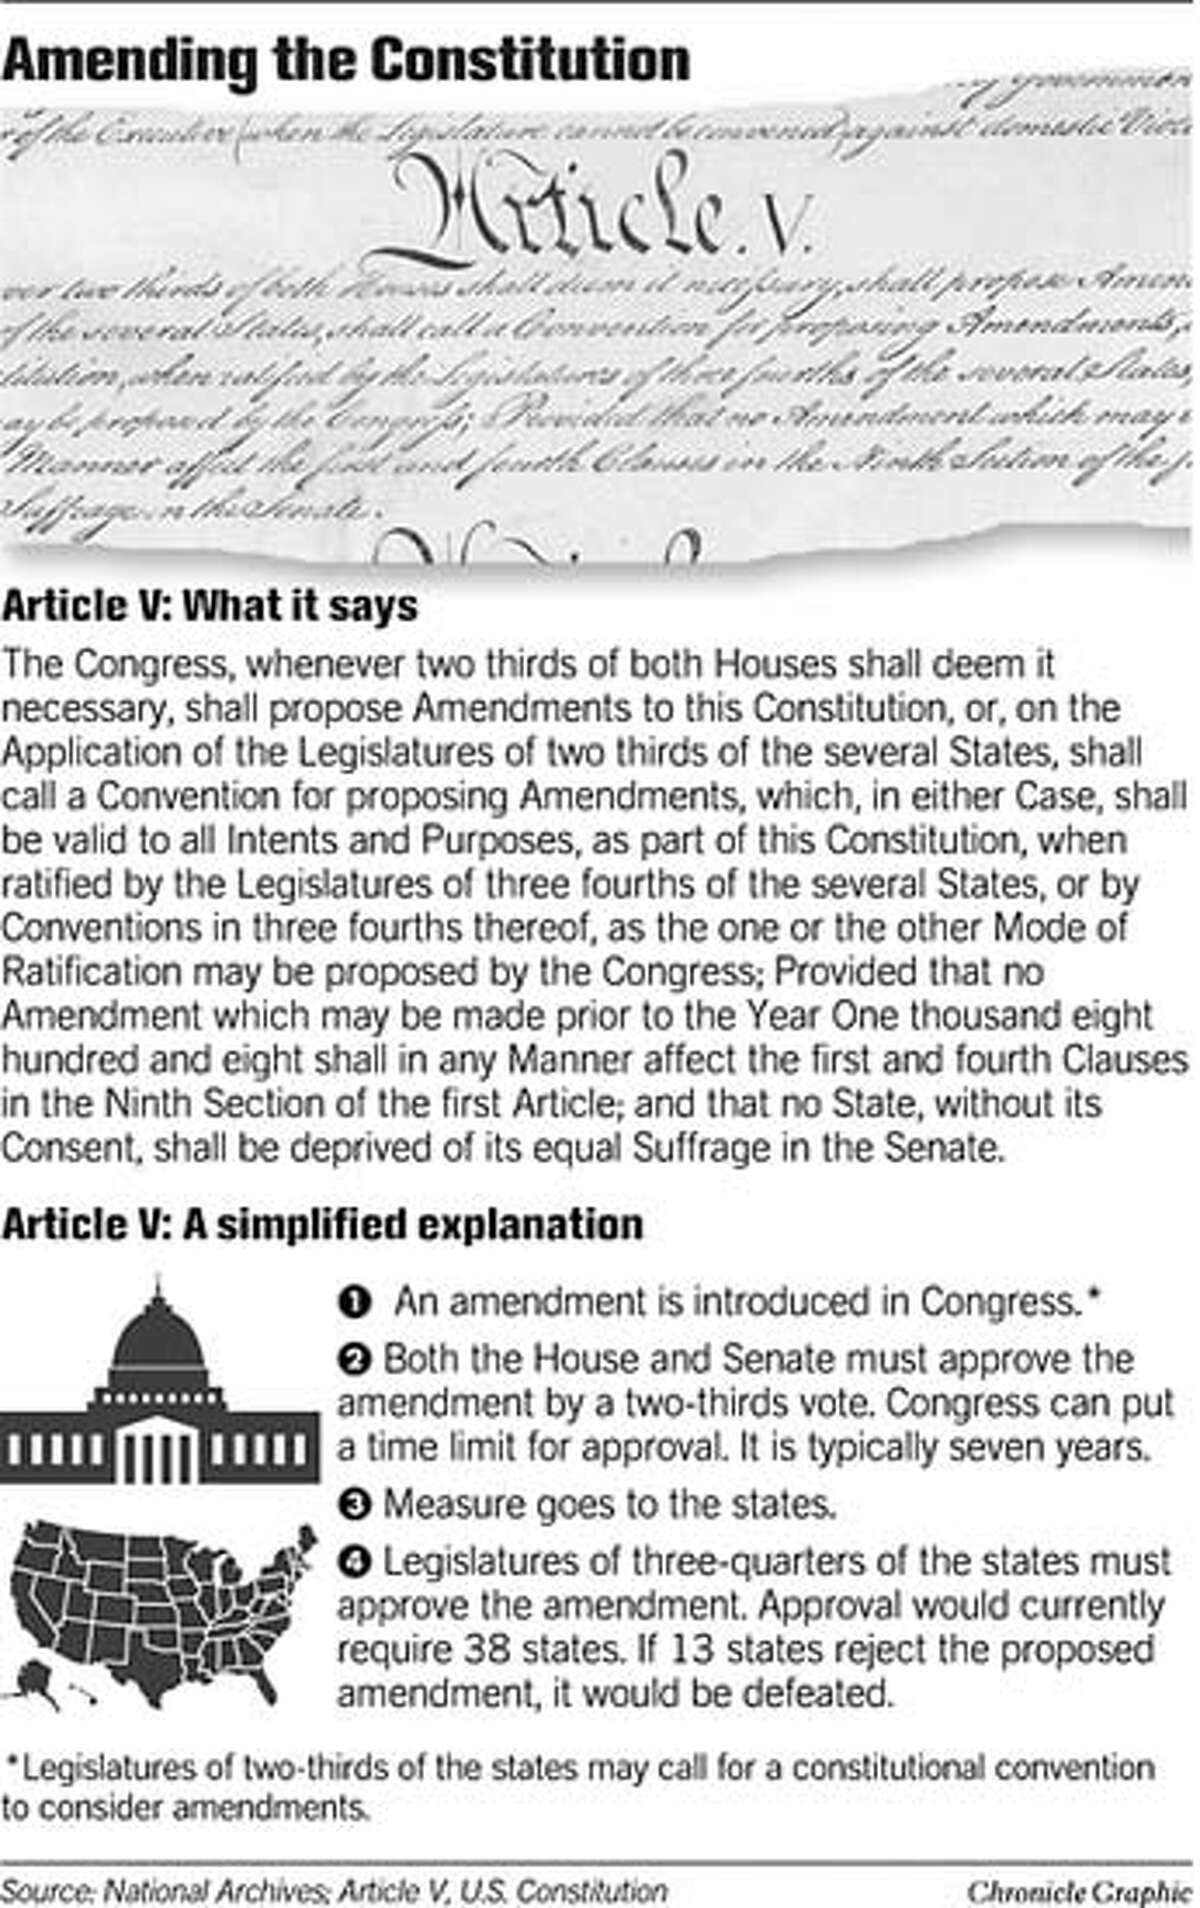 Amending the Constitution. Chronicle Graphic